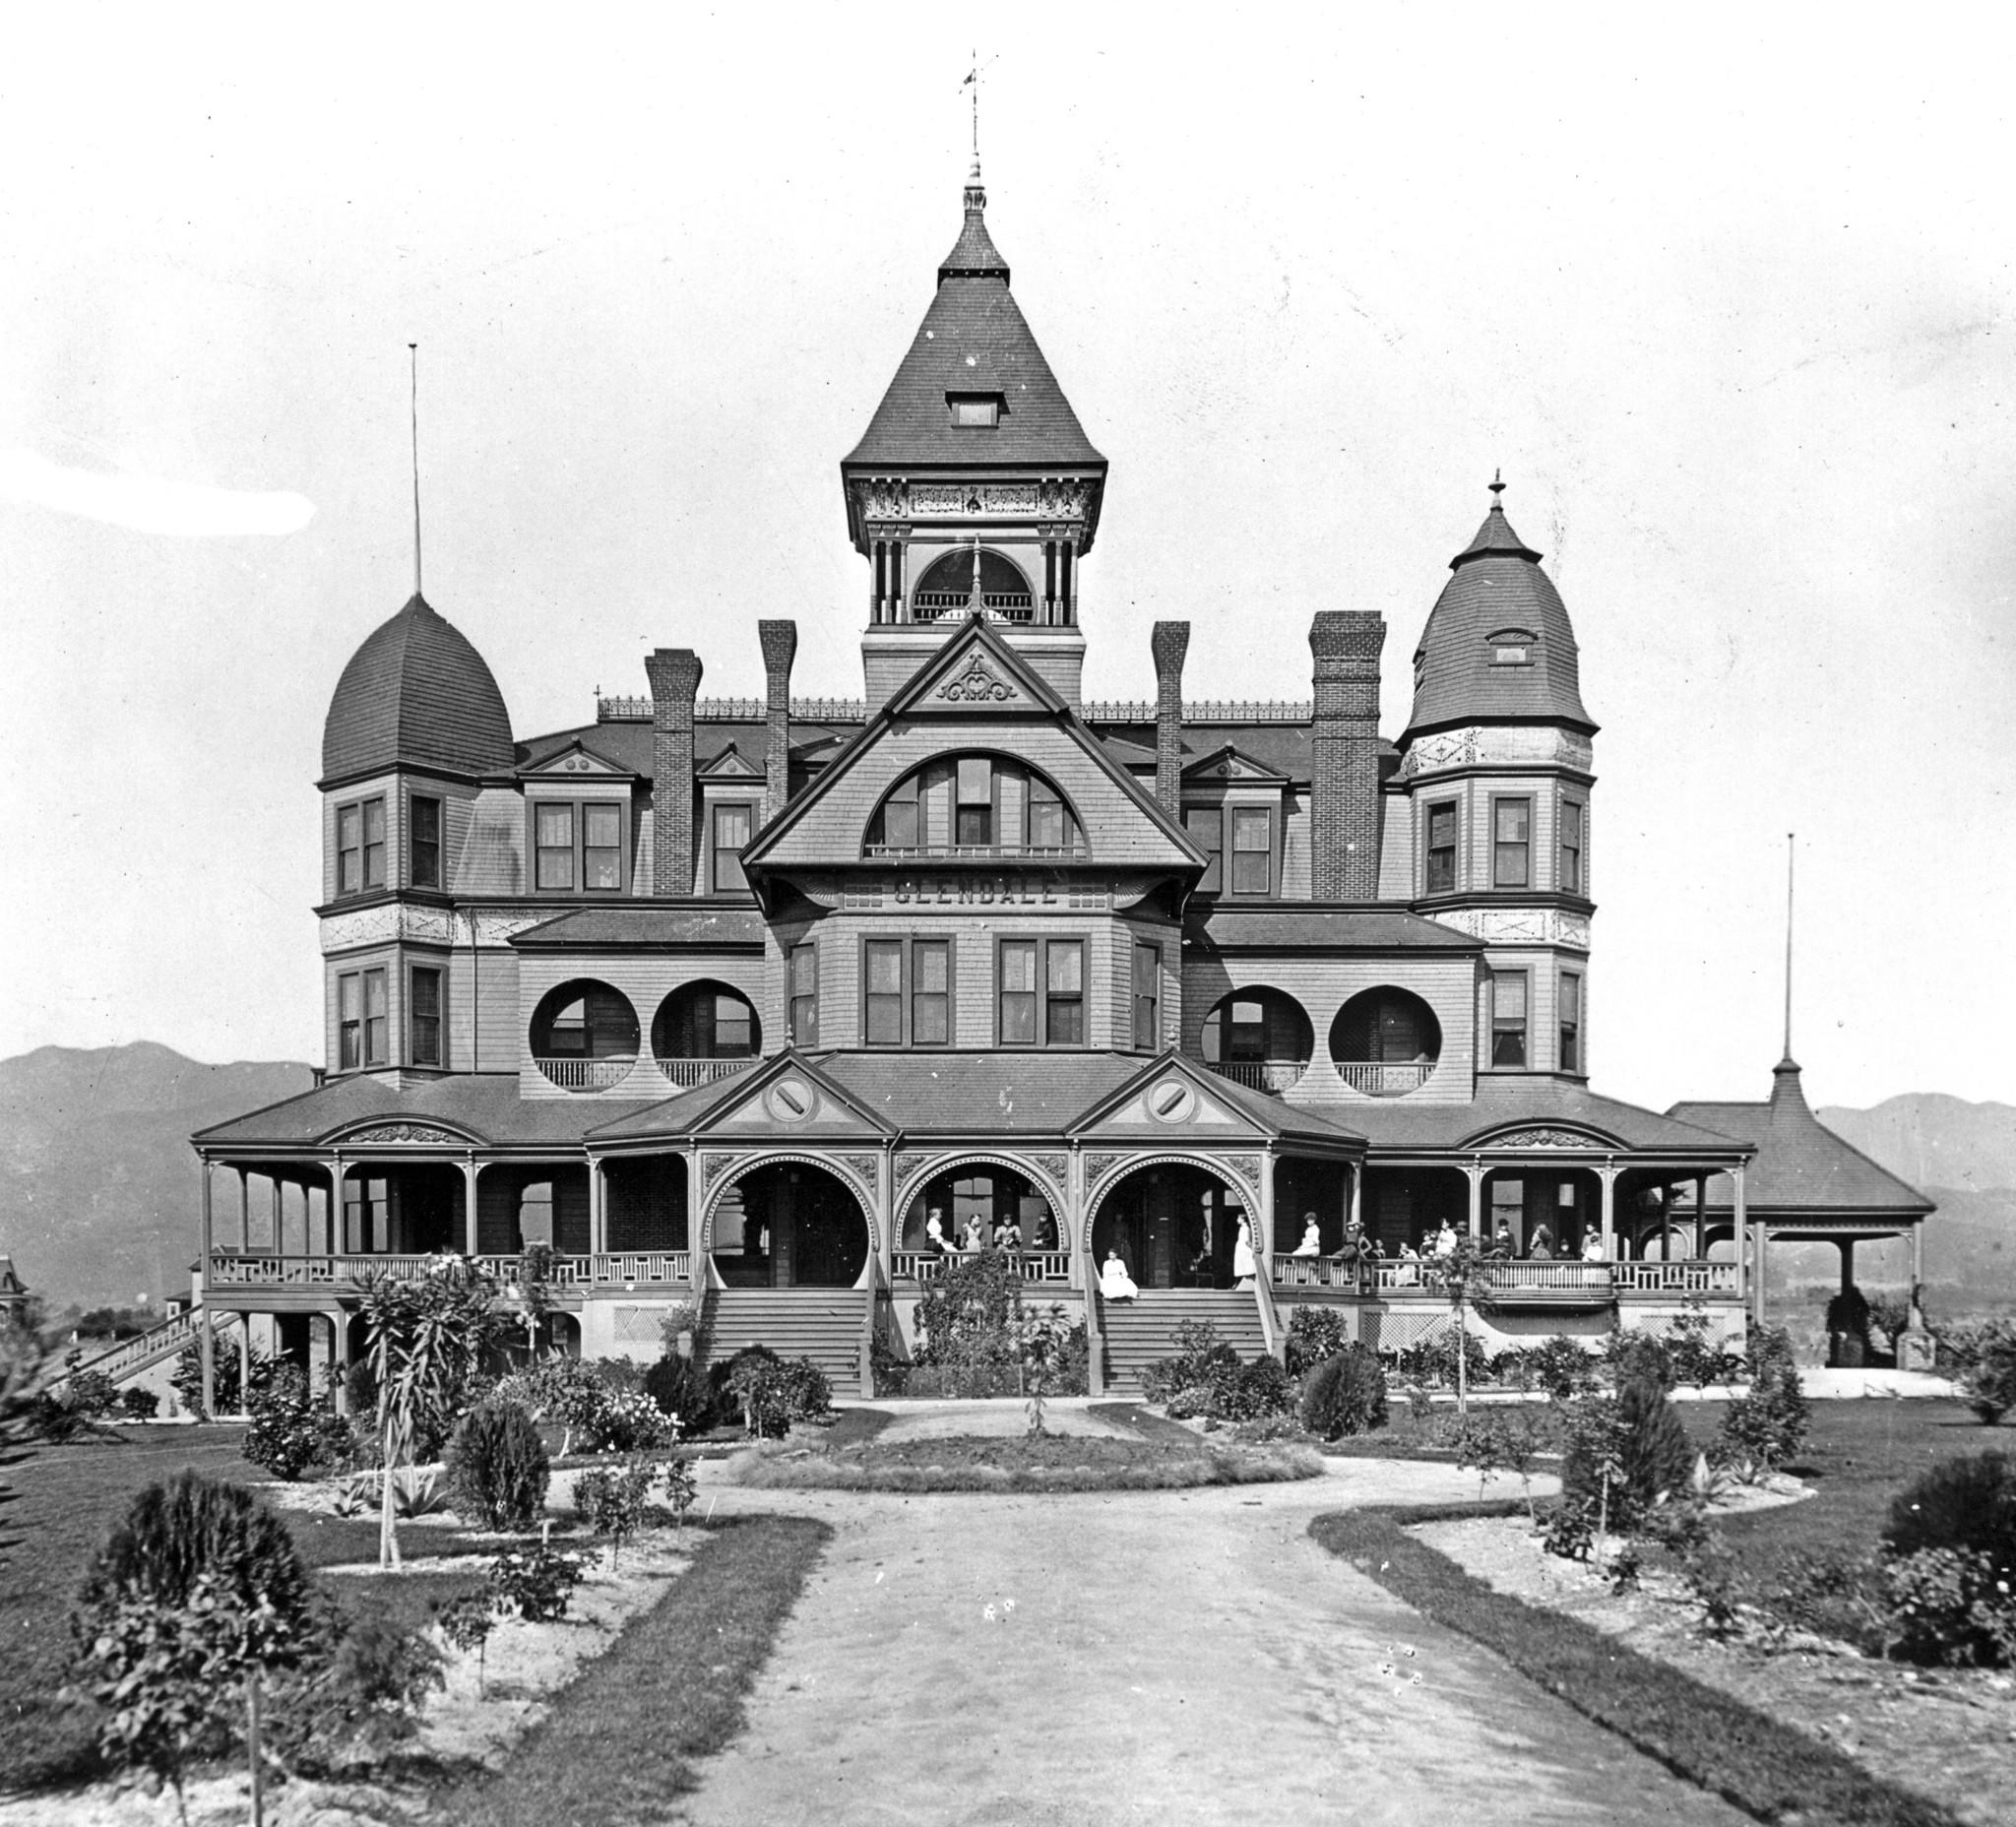 After the landmark Glendale Hotel, built in 1887 on Broadway between Jackson and Isabel streets, fell victim to a faltering economy, it was rented by the Episcopal Church and used as a girls' school. St. Hilda's Hall opened in February 1889 and a month later became the first home of the newly formed Episcopal mission, which eventually became St. Mark's Episcopal Church. Photo circa 1890.